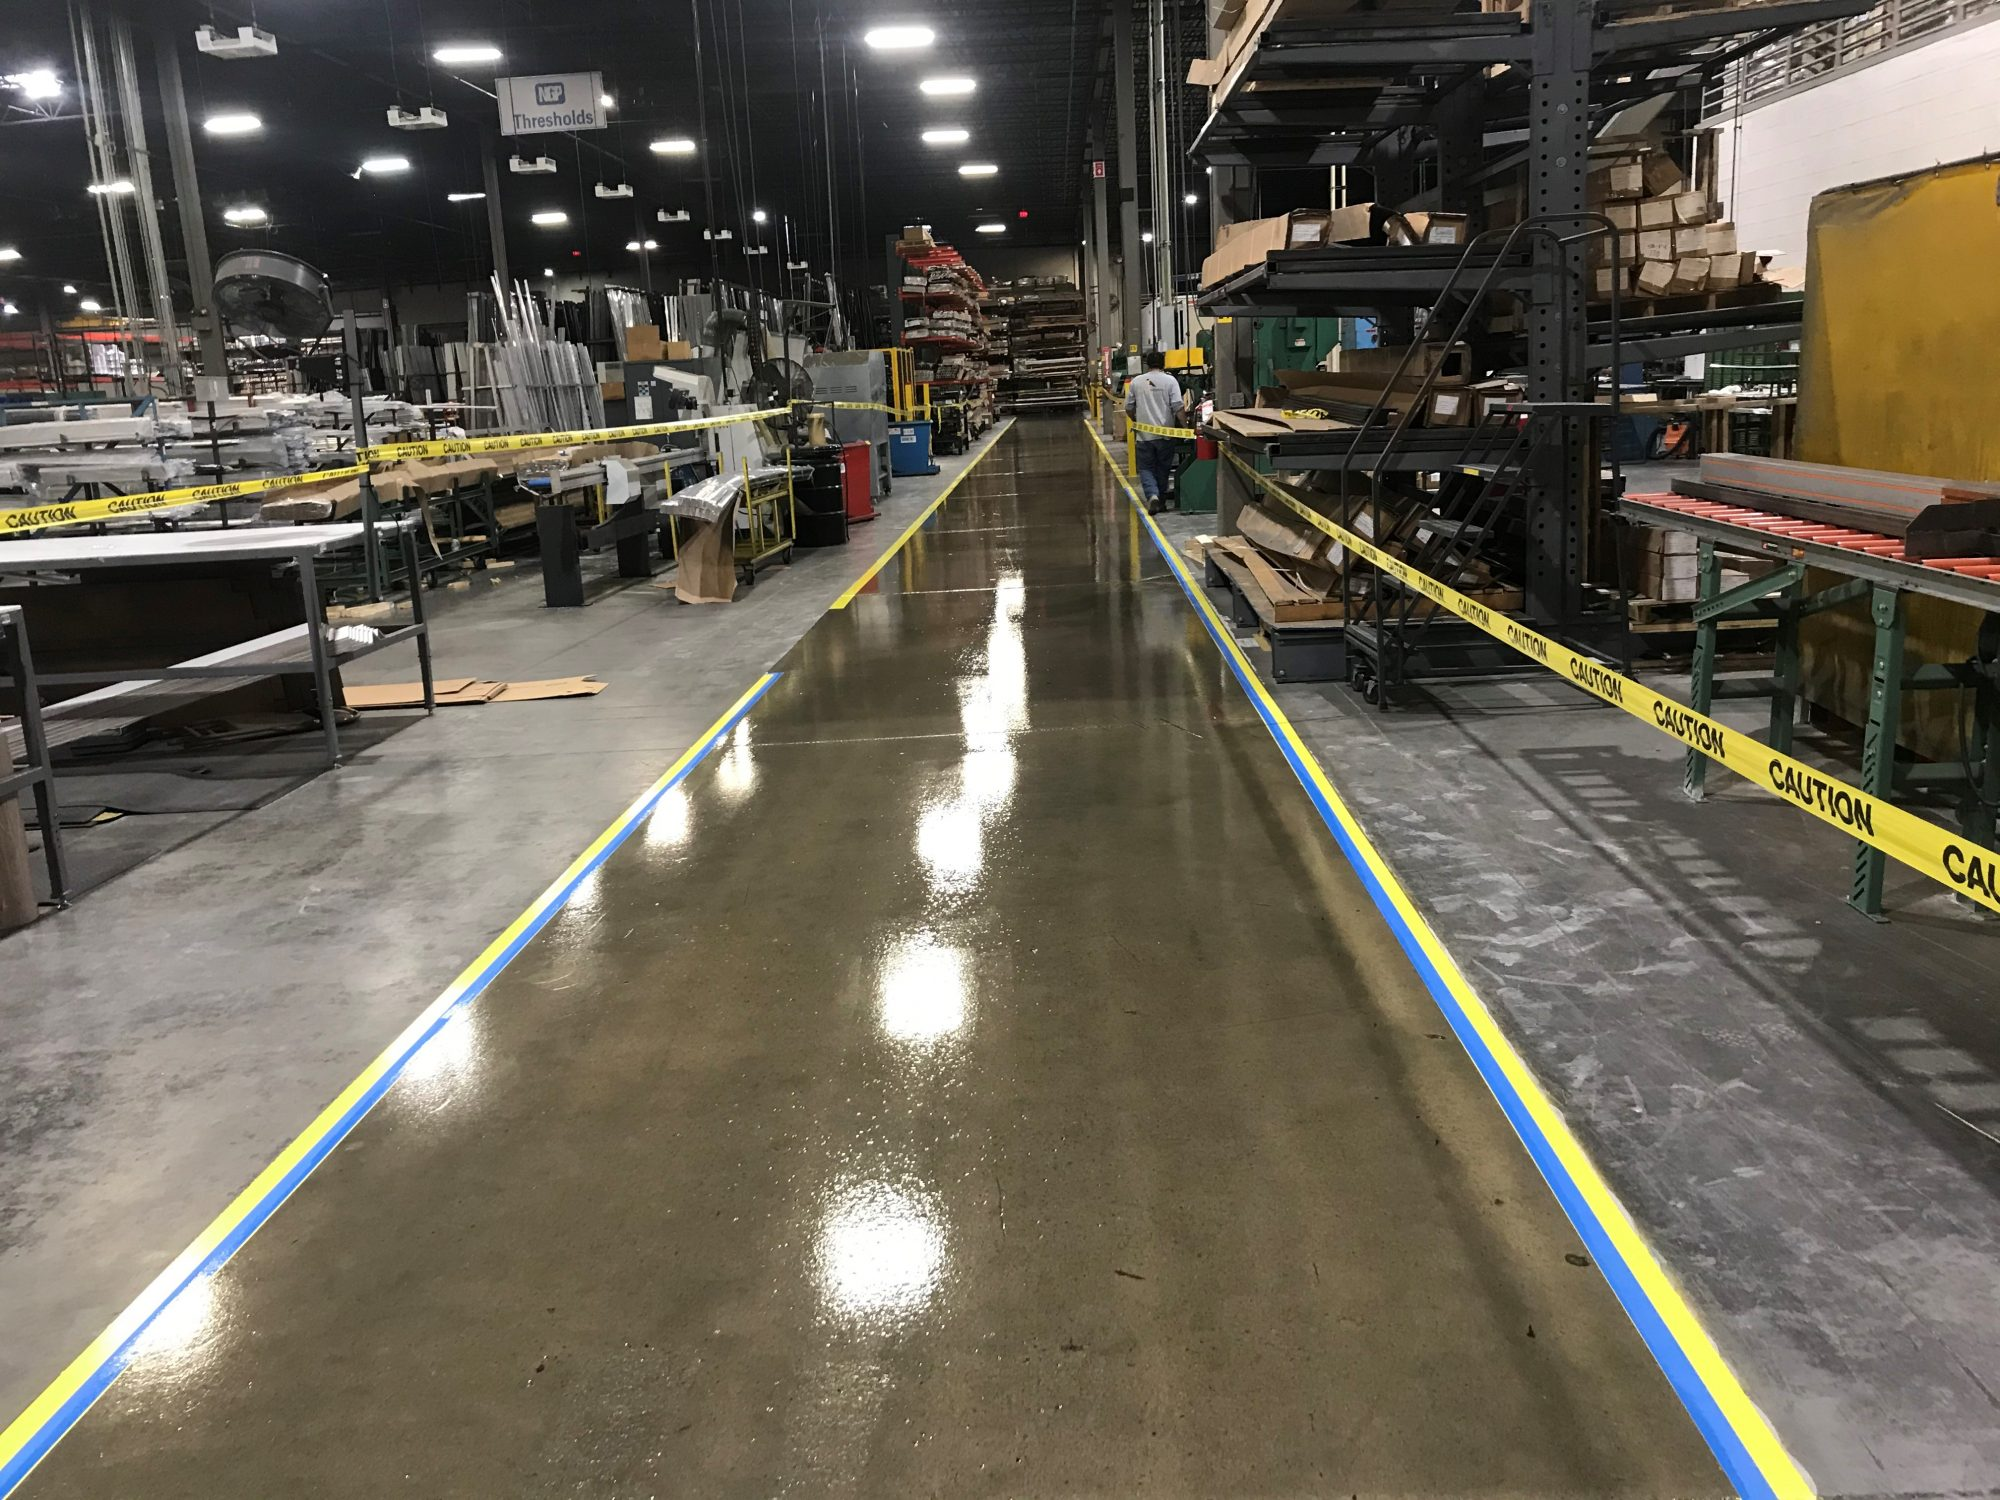 epoxy floor coatings, Concrete aisle coatings, safety striping, 5S, Industrial Applications Inc., IA30yrs, epoxy floor coating, concrete floor coatings